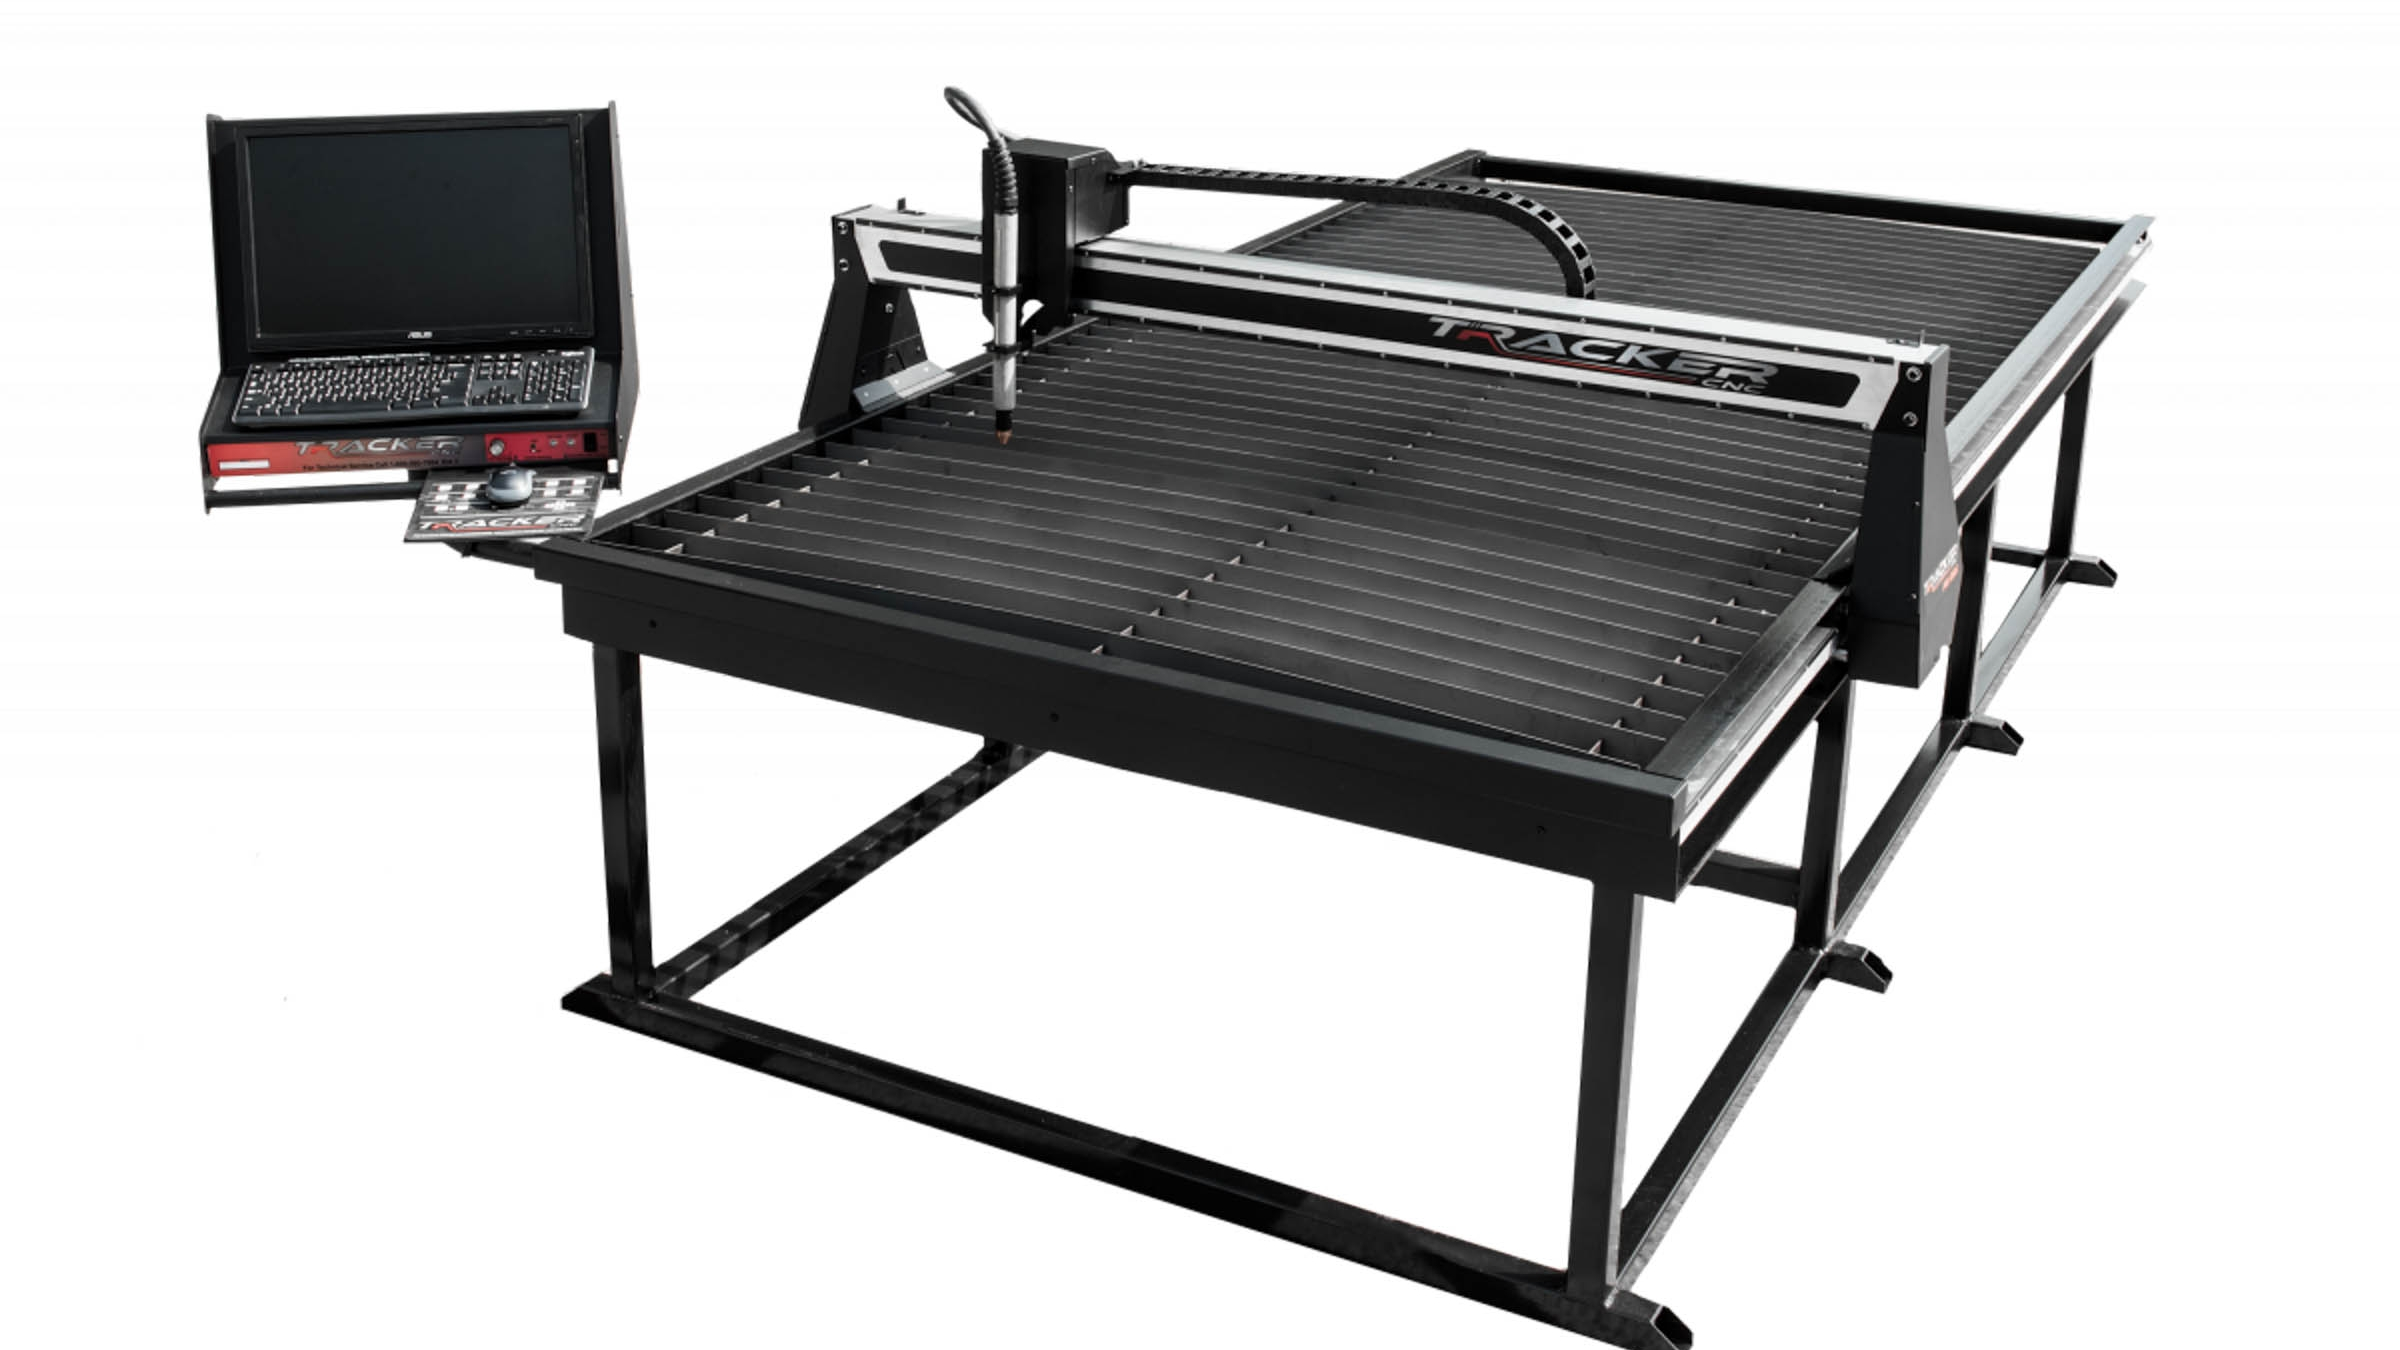 4x8 NITRO TABLE - Have an especially high volume of production at your HVAC, welding or metal fabricating shop? Cut like the pros, keep your budget.Pricing starts at $13,995.00